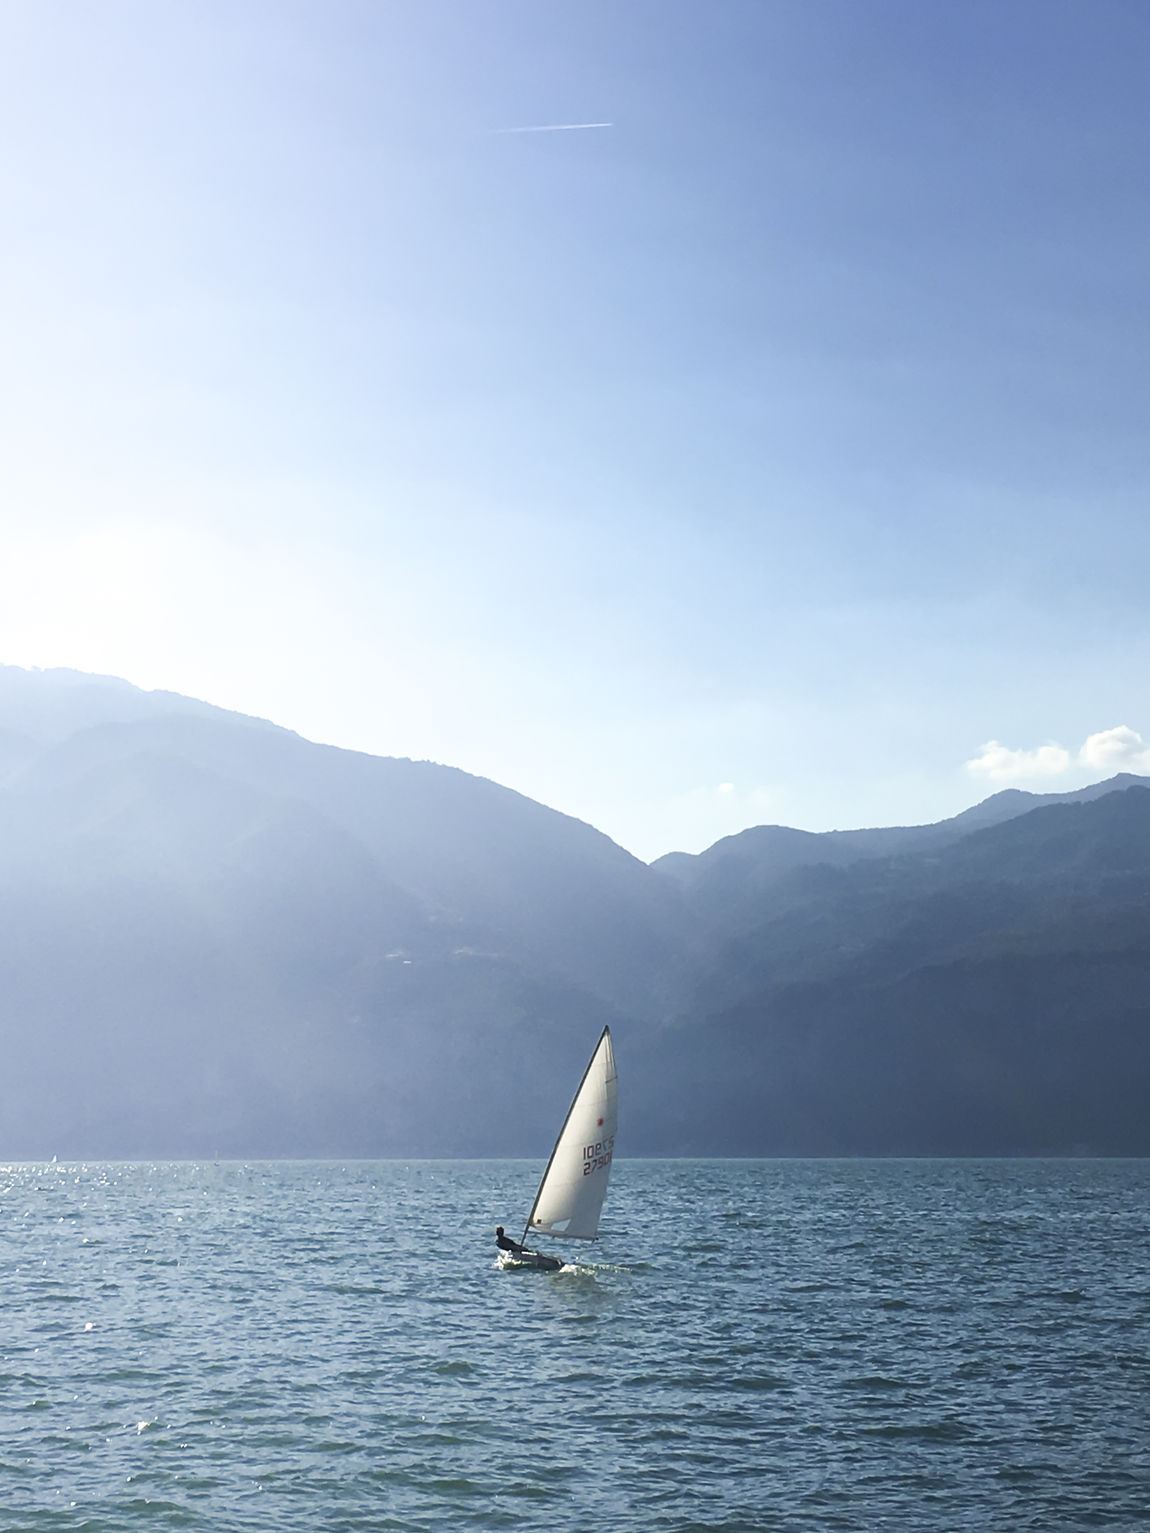 Sailing Beauty In Nature Boy Day Lake LakeGarda Laser Mountain Nature Outdoors Sailboot Sailing Scenics Sky Sunset Tranquility Travel Destinations Water Waterfront